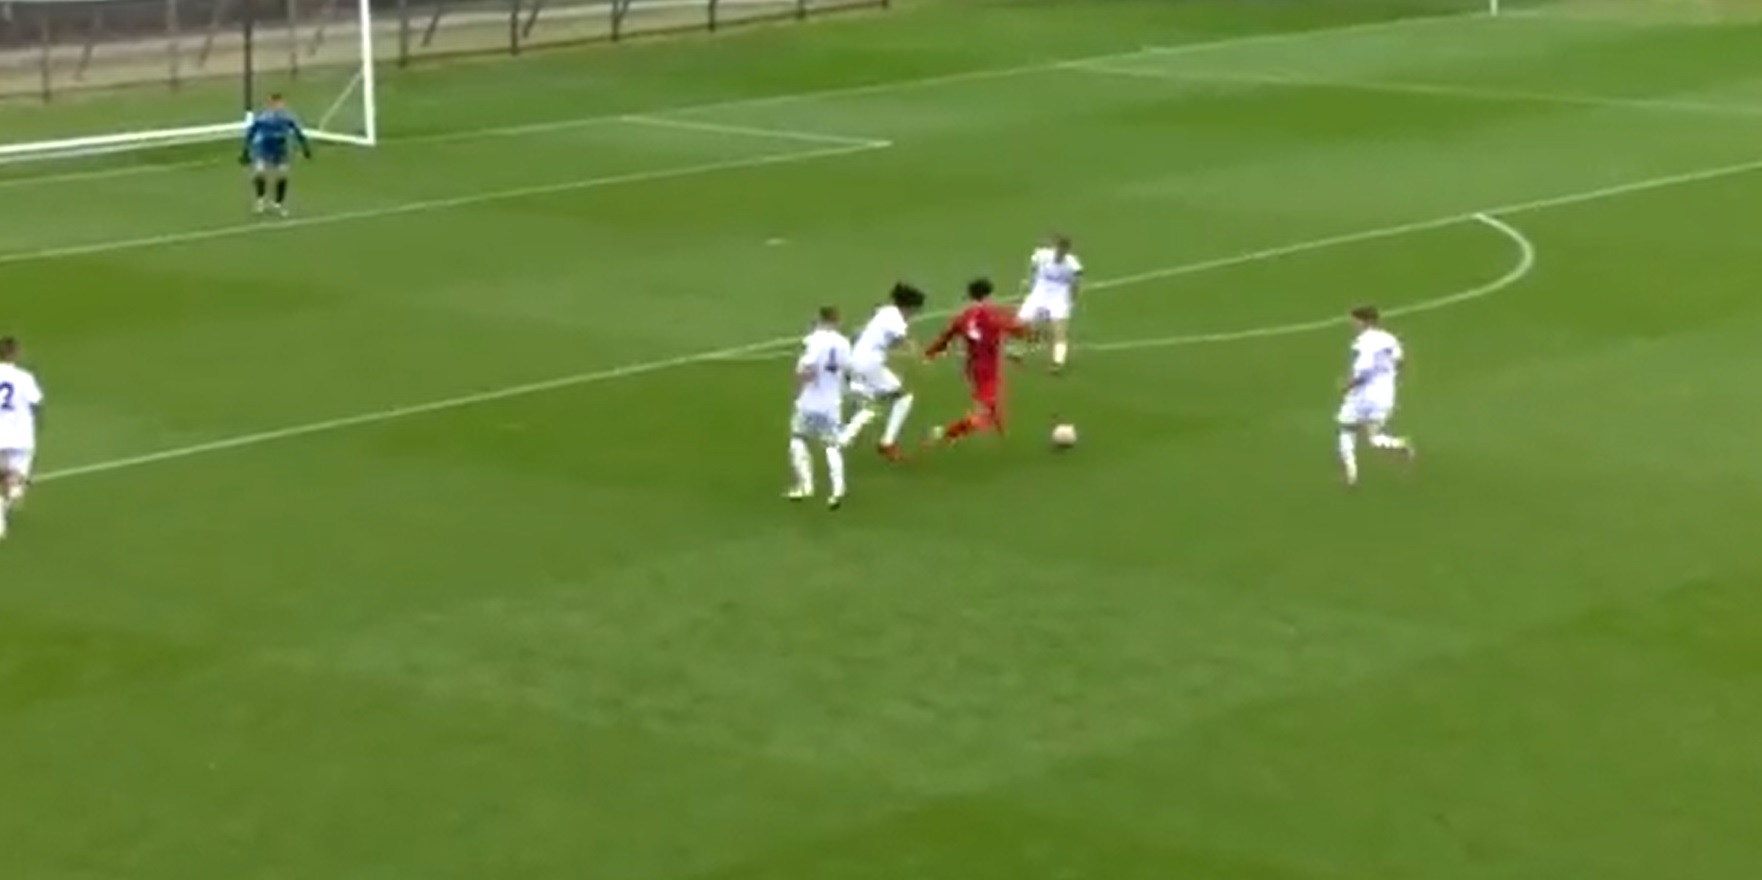 (Video) Young Liverpool defender embarks on crazy, Matip-esque run to set up goalscoring chance on other end of the pitch